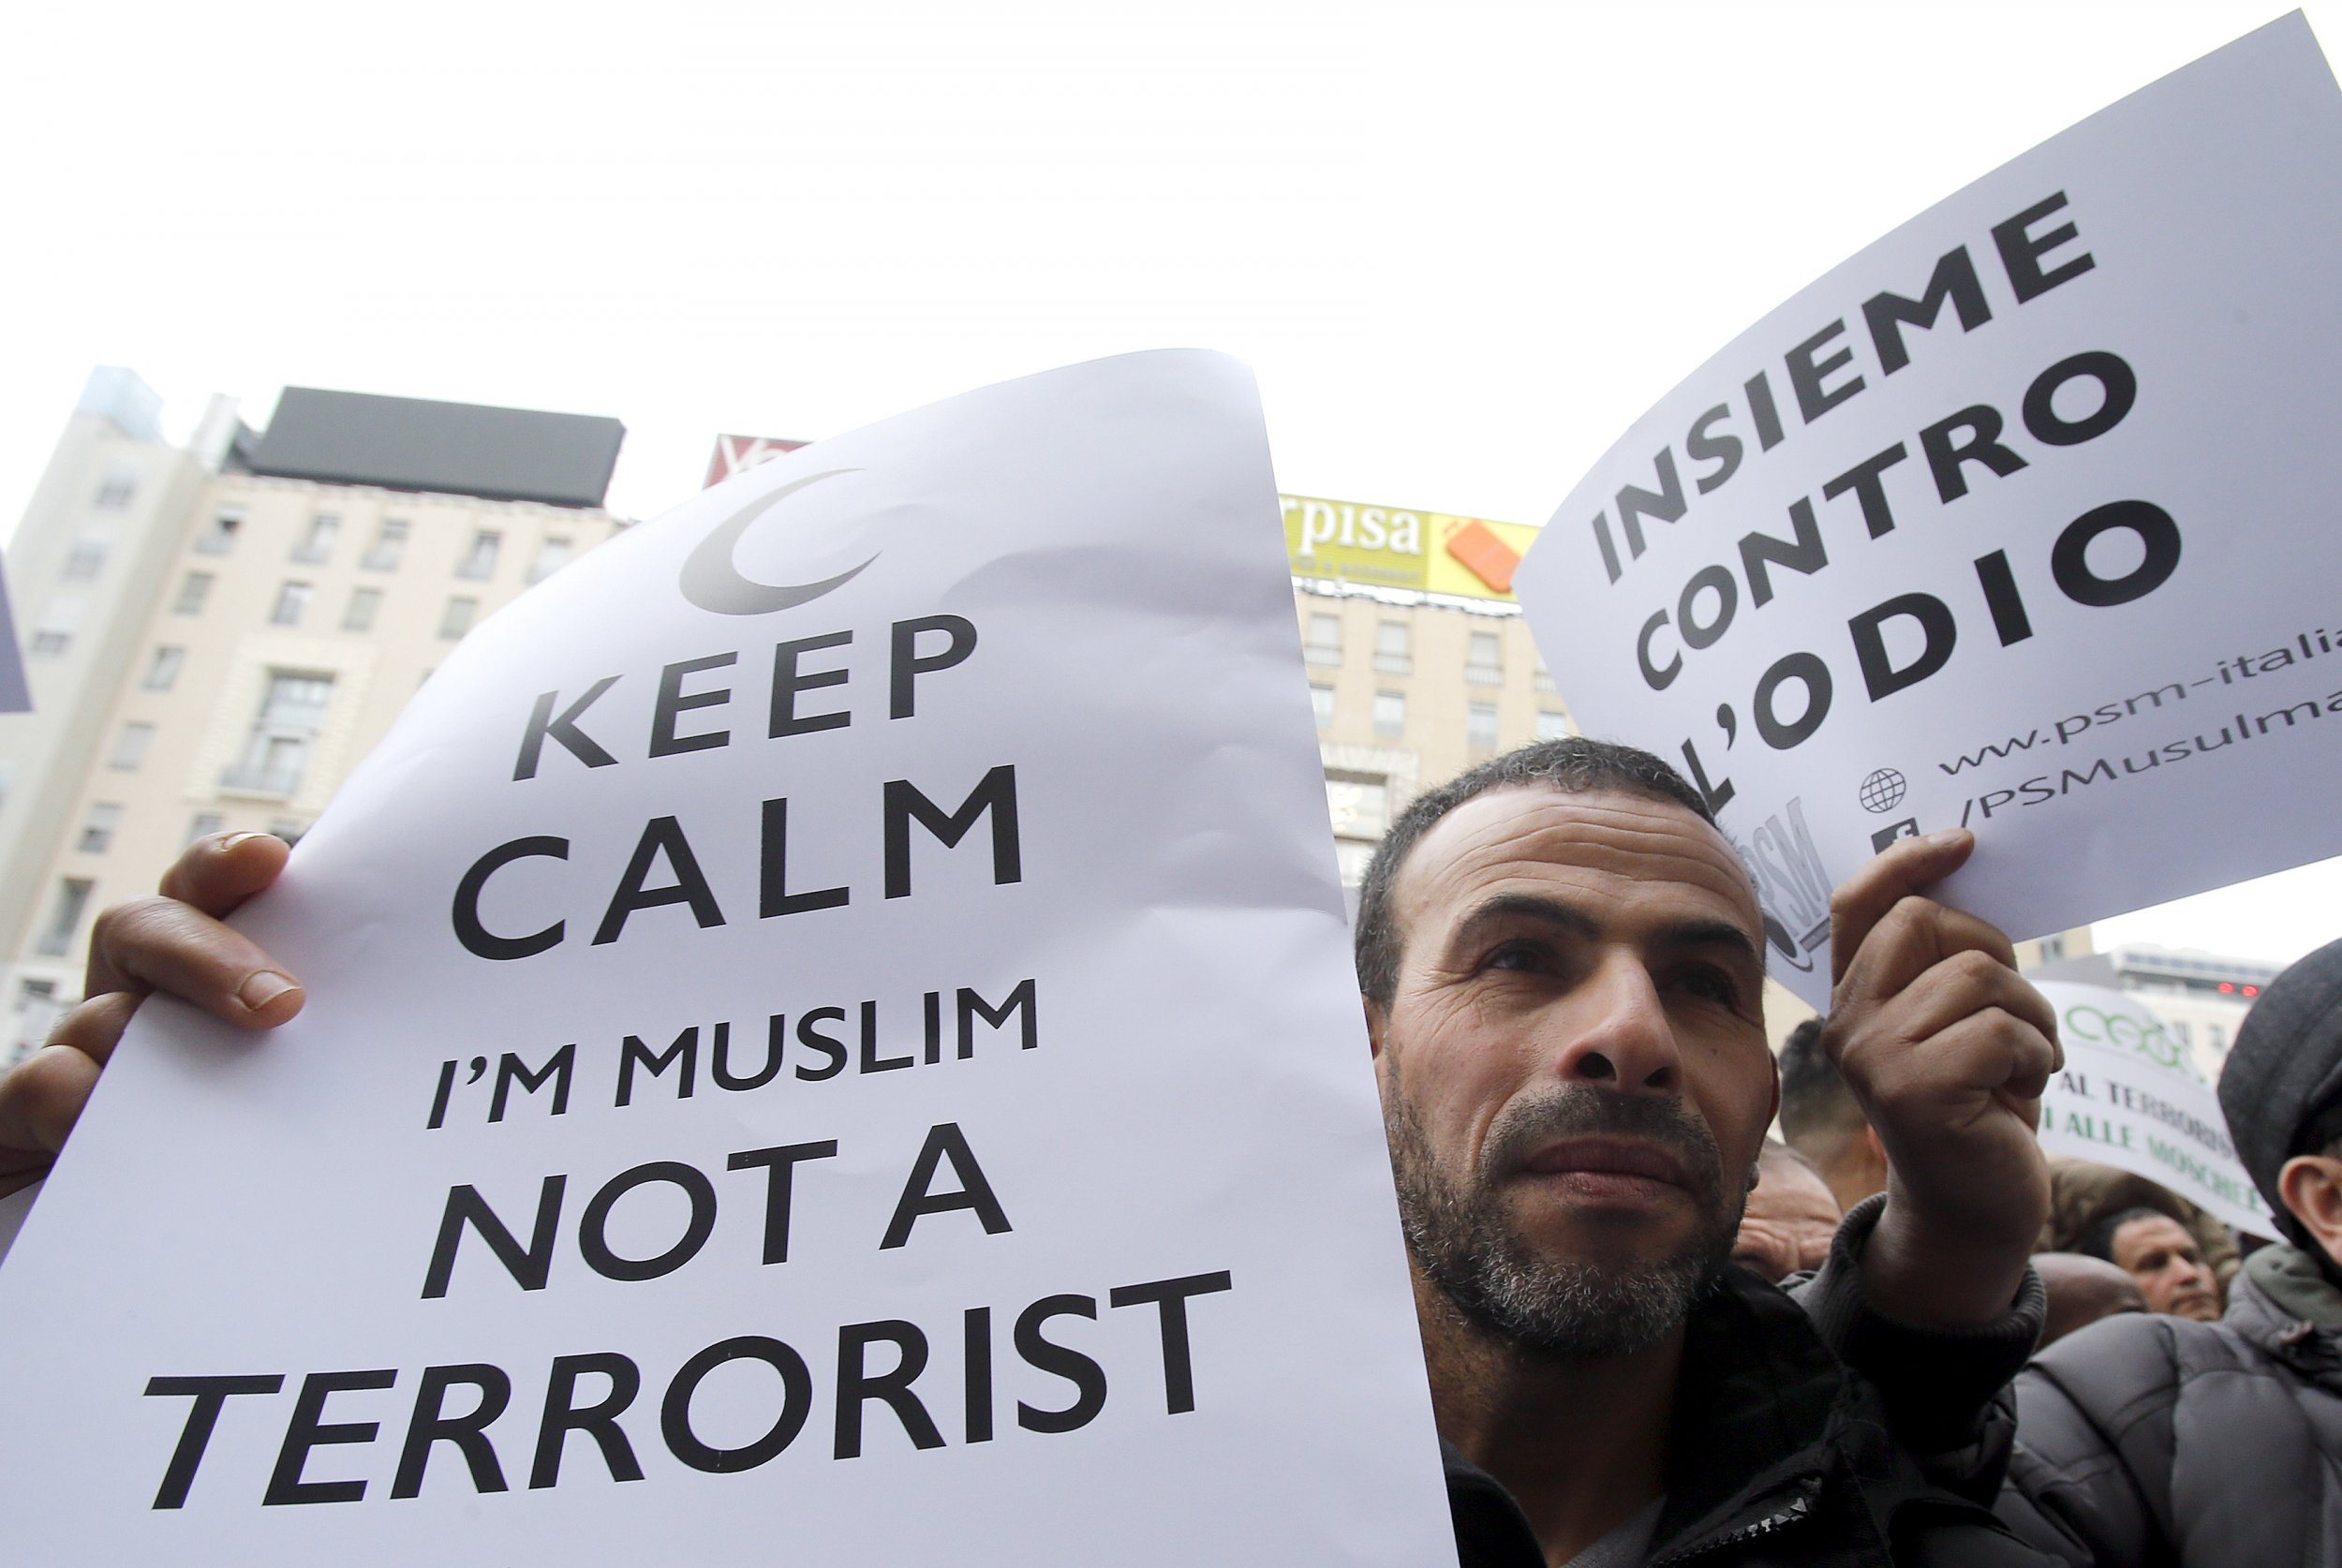 10,000 Muslims will march in Cologne on Saturday against terrorism